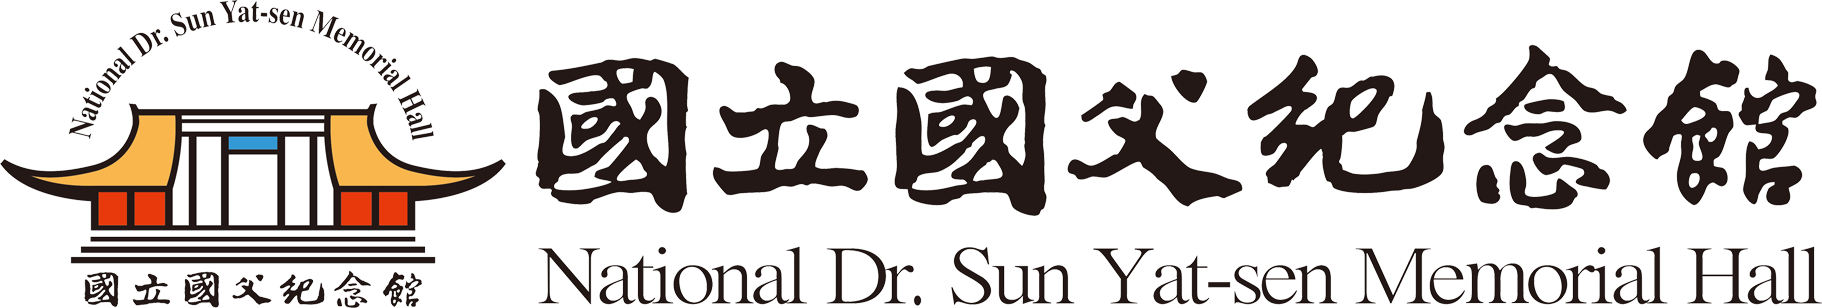 National Dr.Sun Yat-sen Memorial Hall-footer-logo